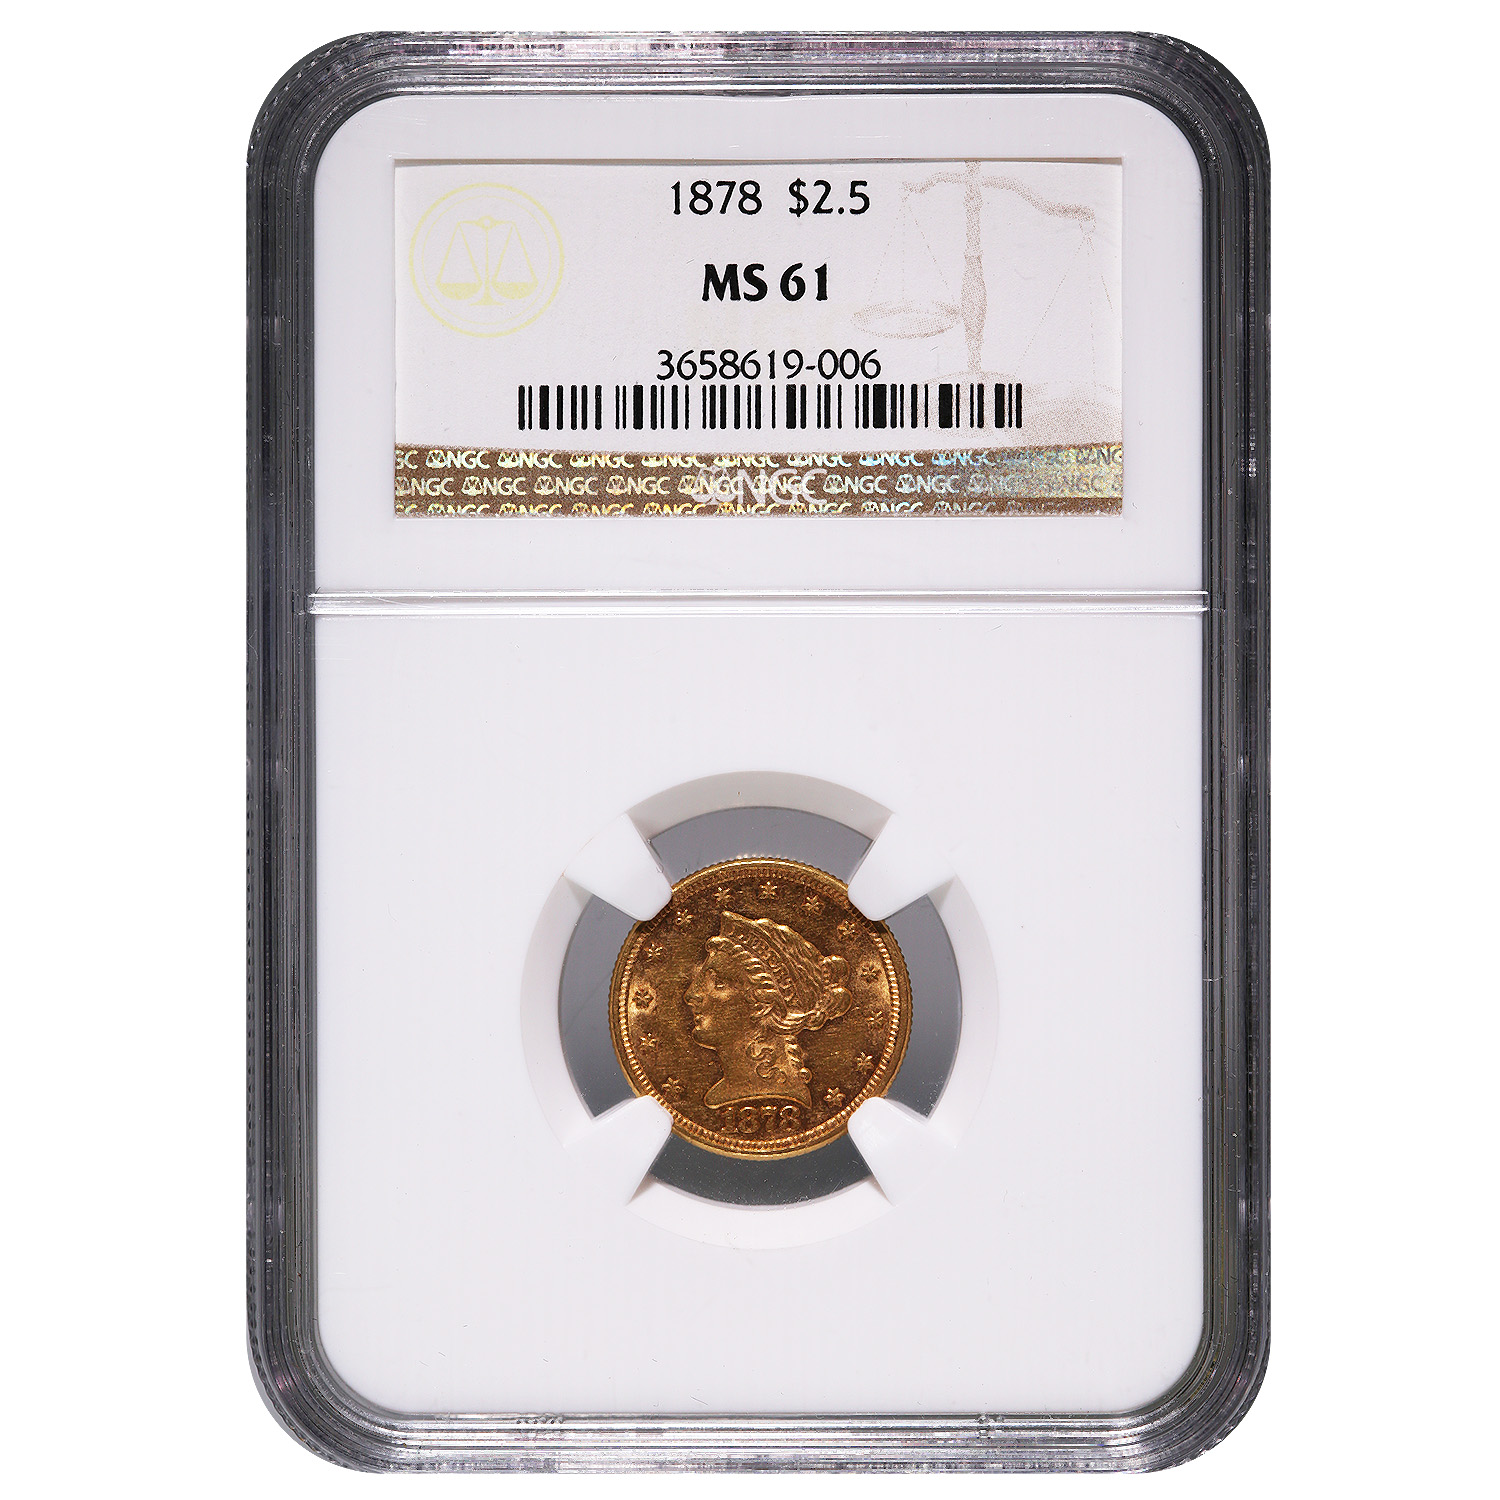 Certified $2.5 Gold Liberty 1878 MS61 NGC